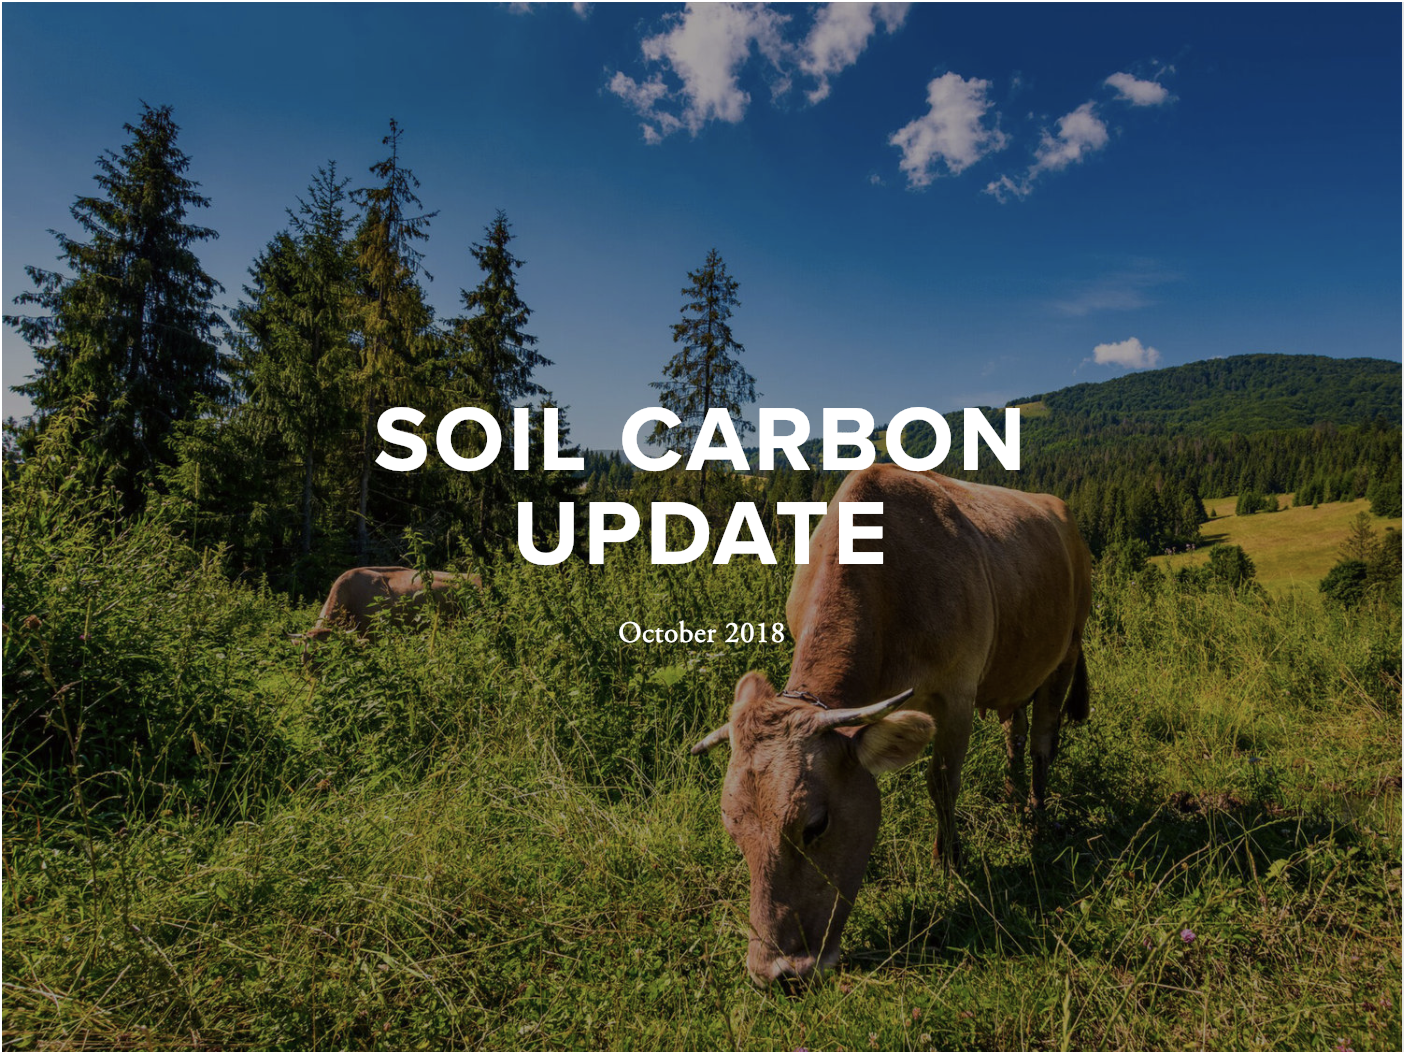 October 2018 Update - This update includes features on reports and studies, conferences, news coverage, emerging efforts, jobs and volunteer opportunities.